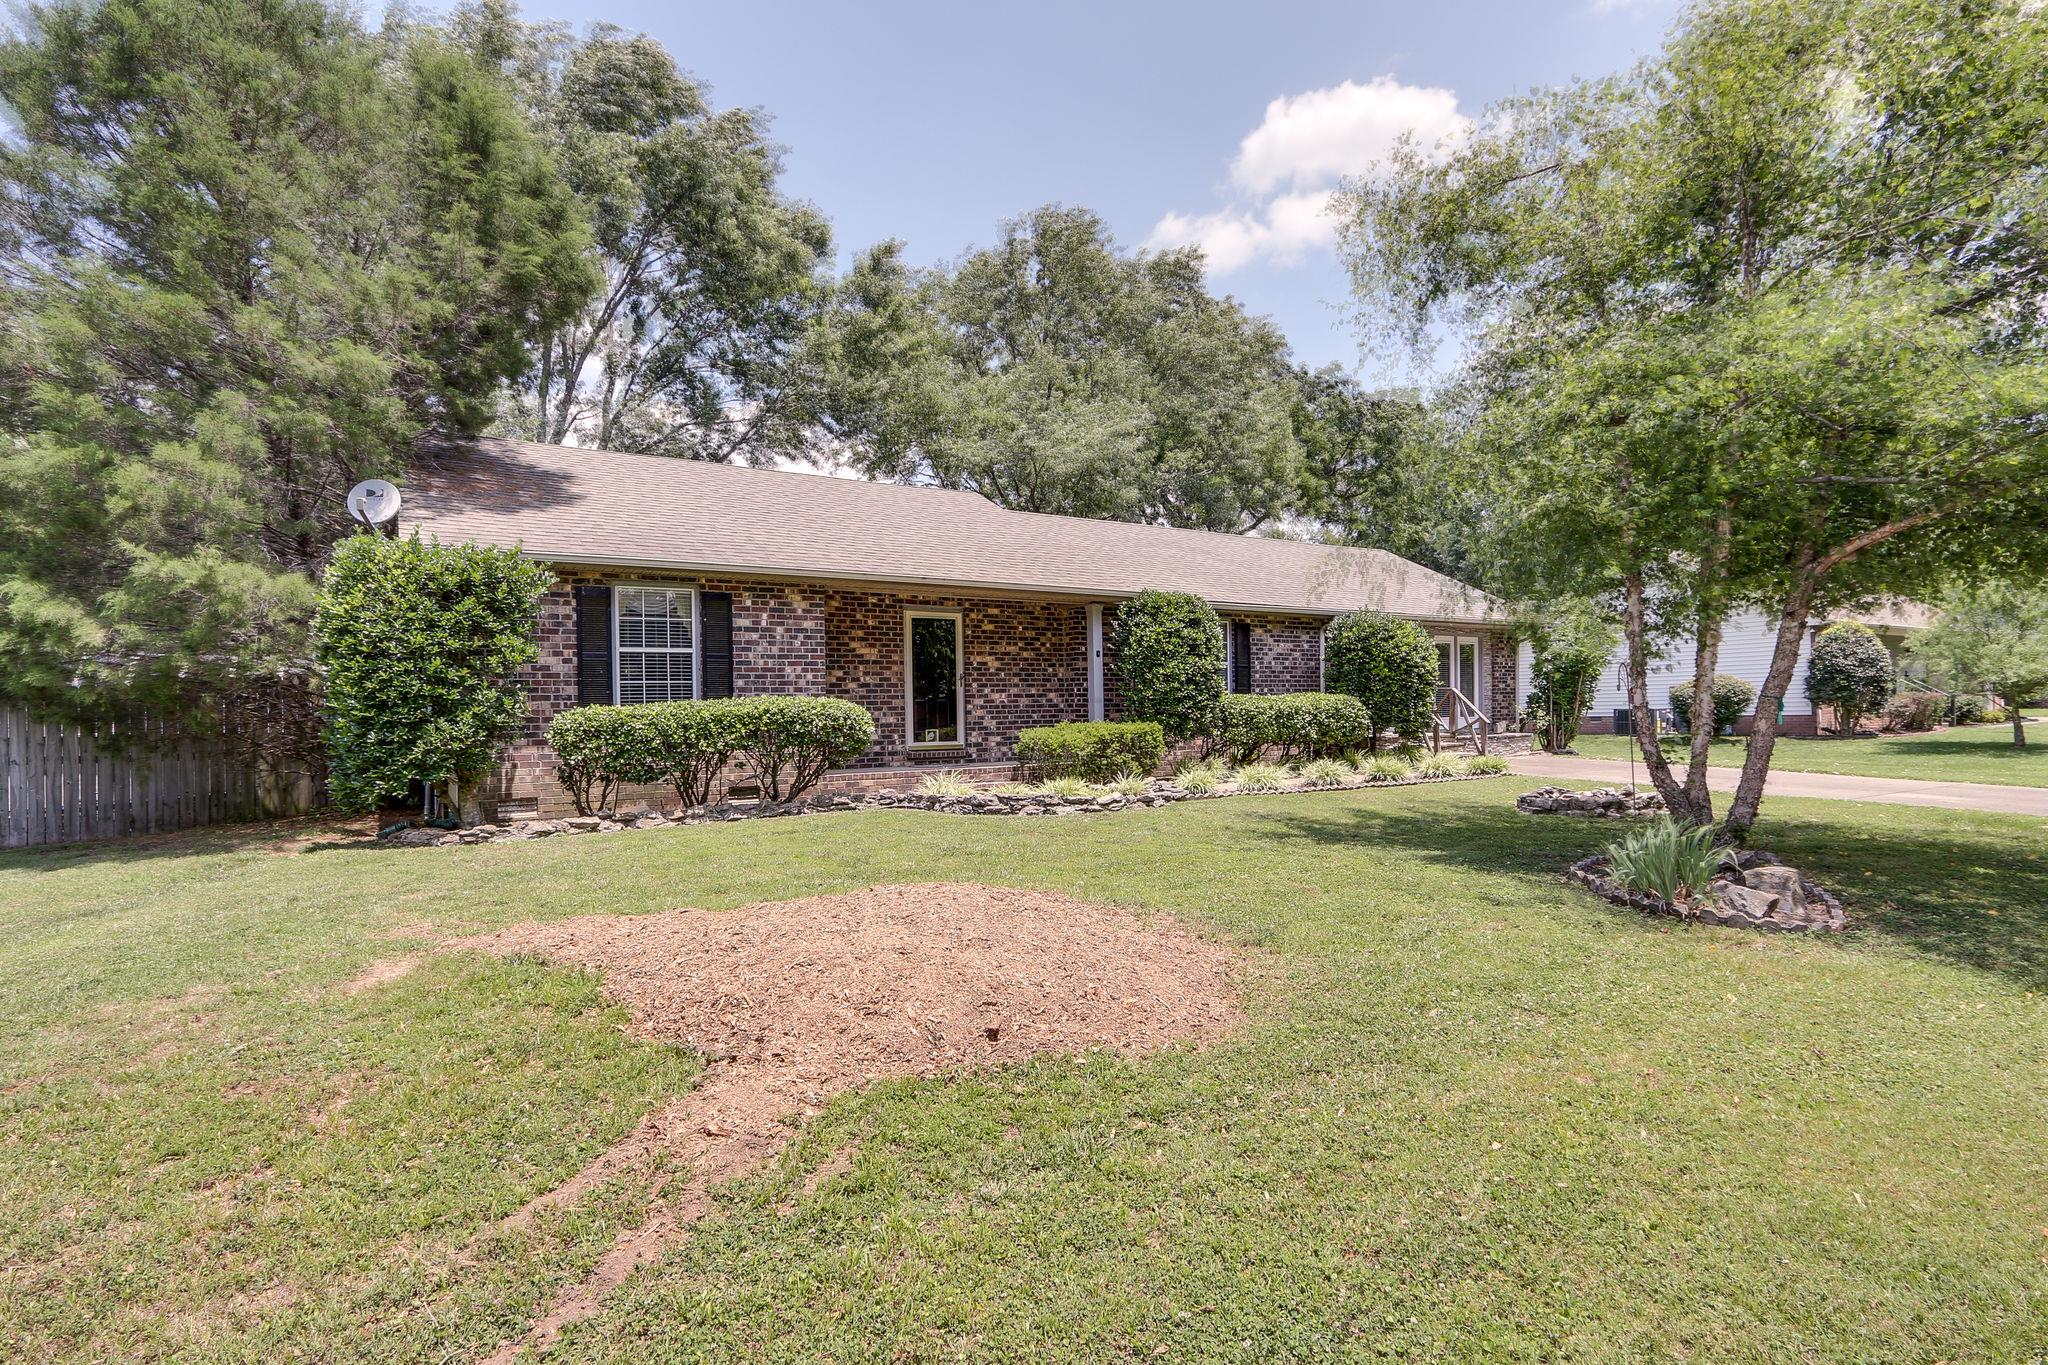 612 Glencoe Ct, Franklin, TN 37064 - Franklin, TN real estate listing